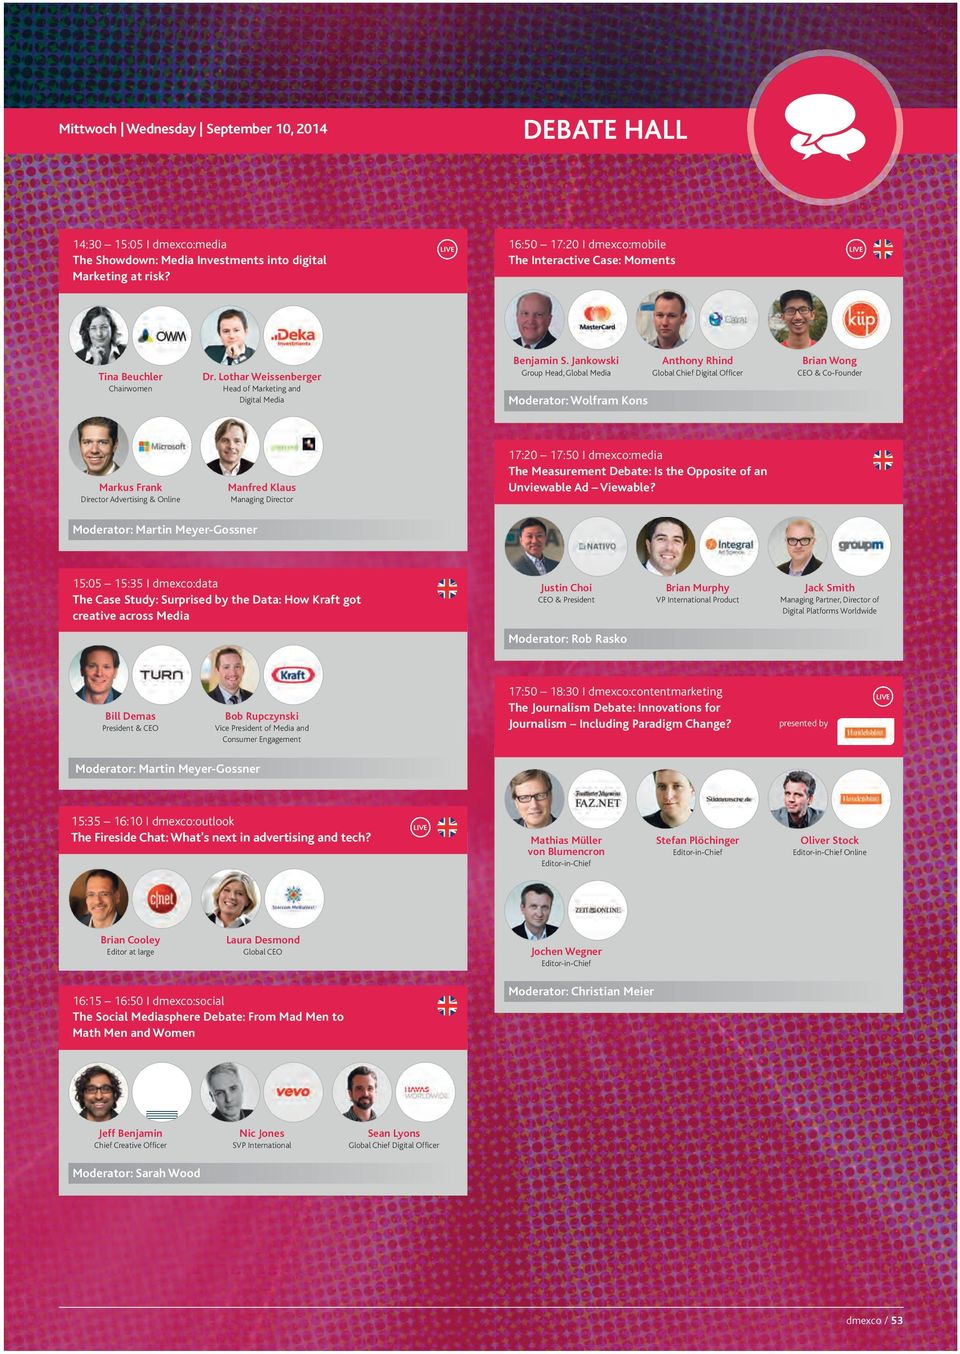 Lothar Weissenberger Head of Marketing and Digital Media Anthony Rhind Global Chief Digital Officer Brian Wong & Co-Founder 17:20 17:50 I dmexco:media The Measurement Debate: Is the Opposite of an